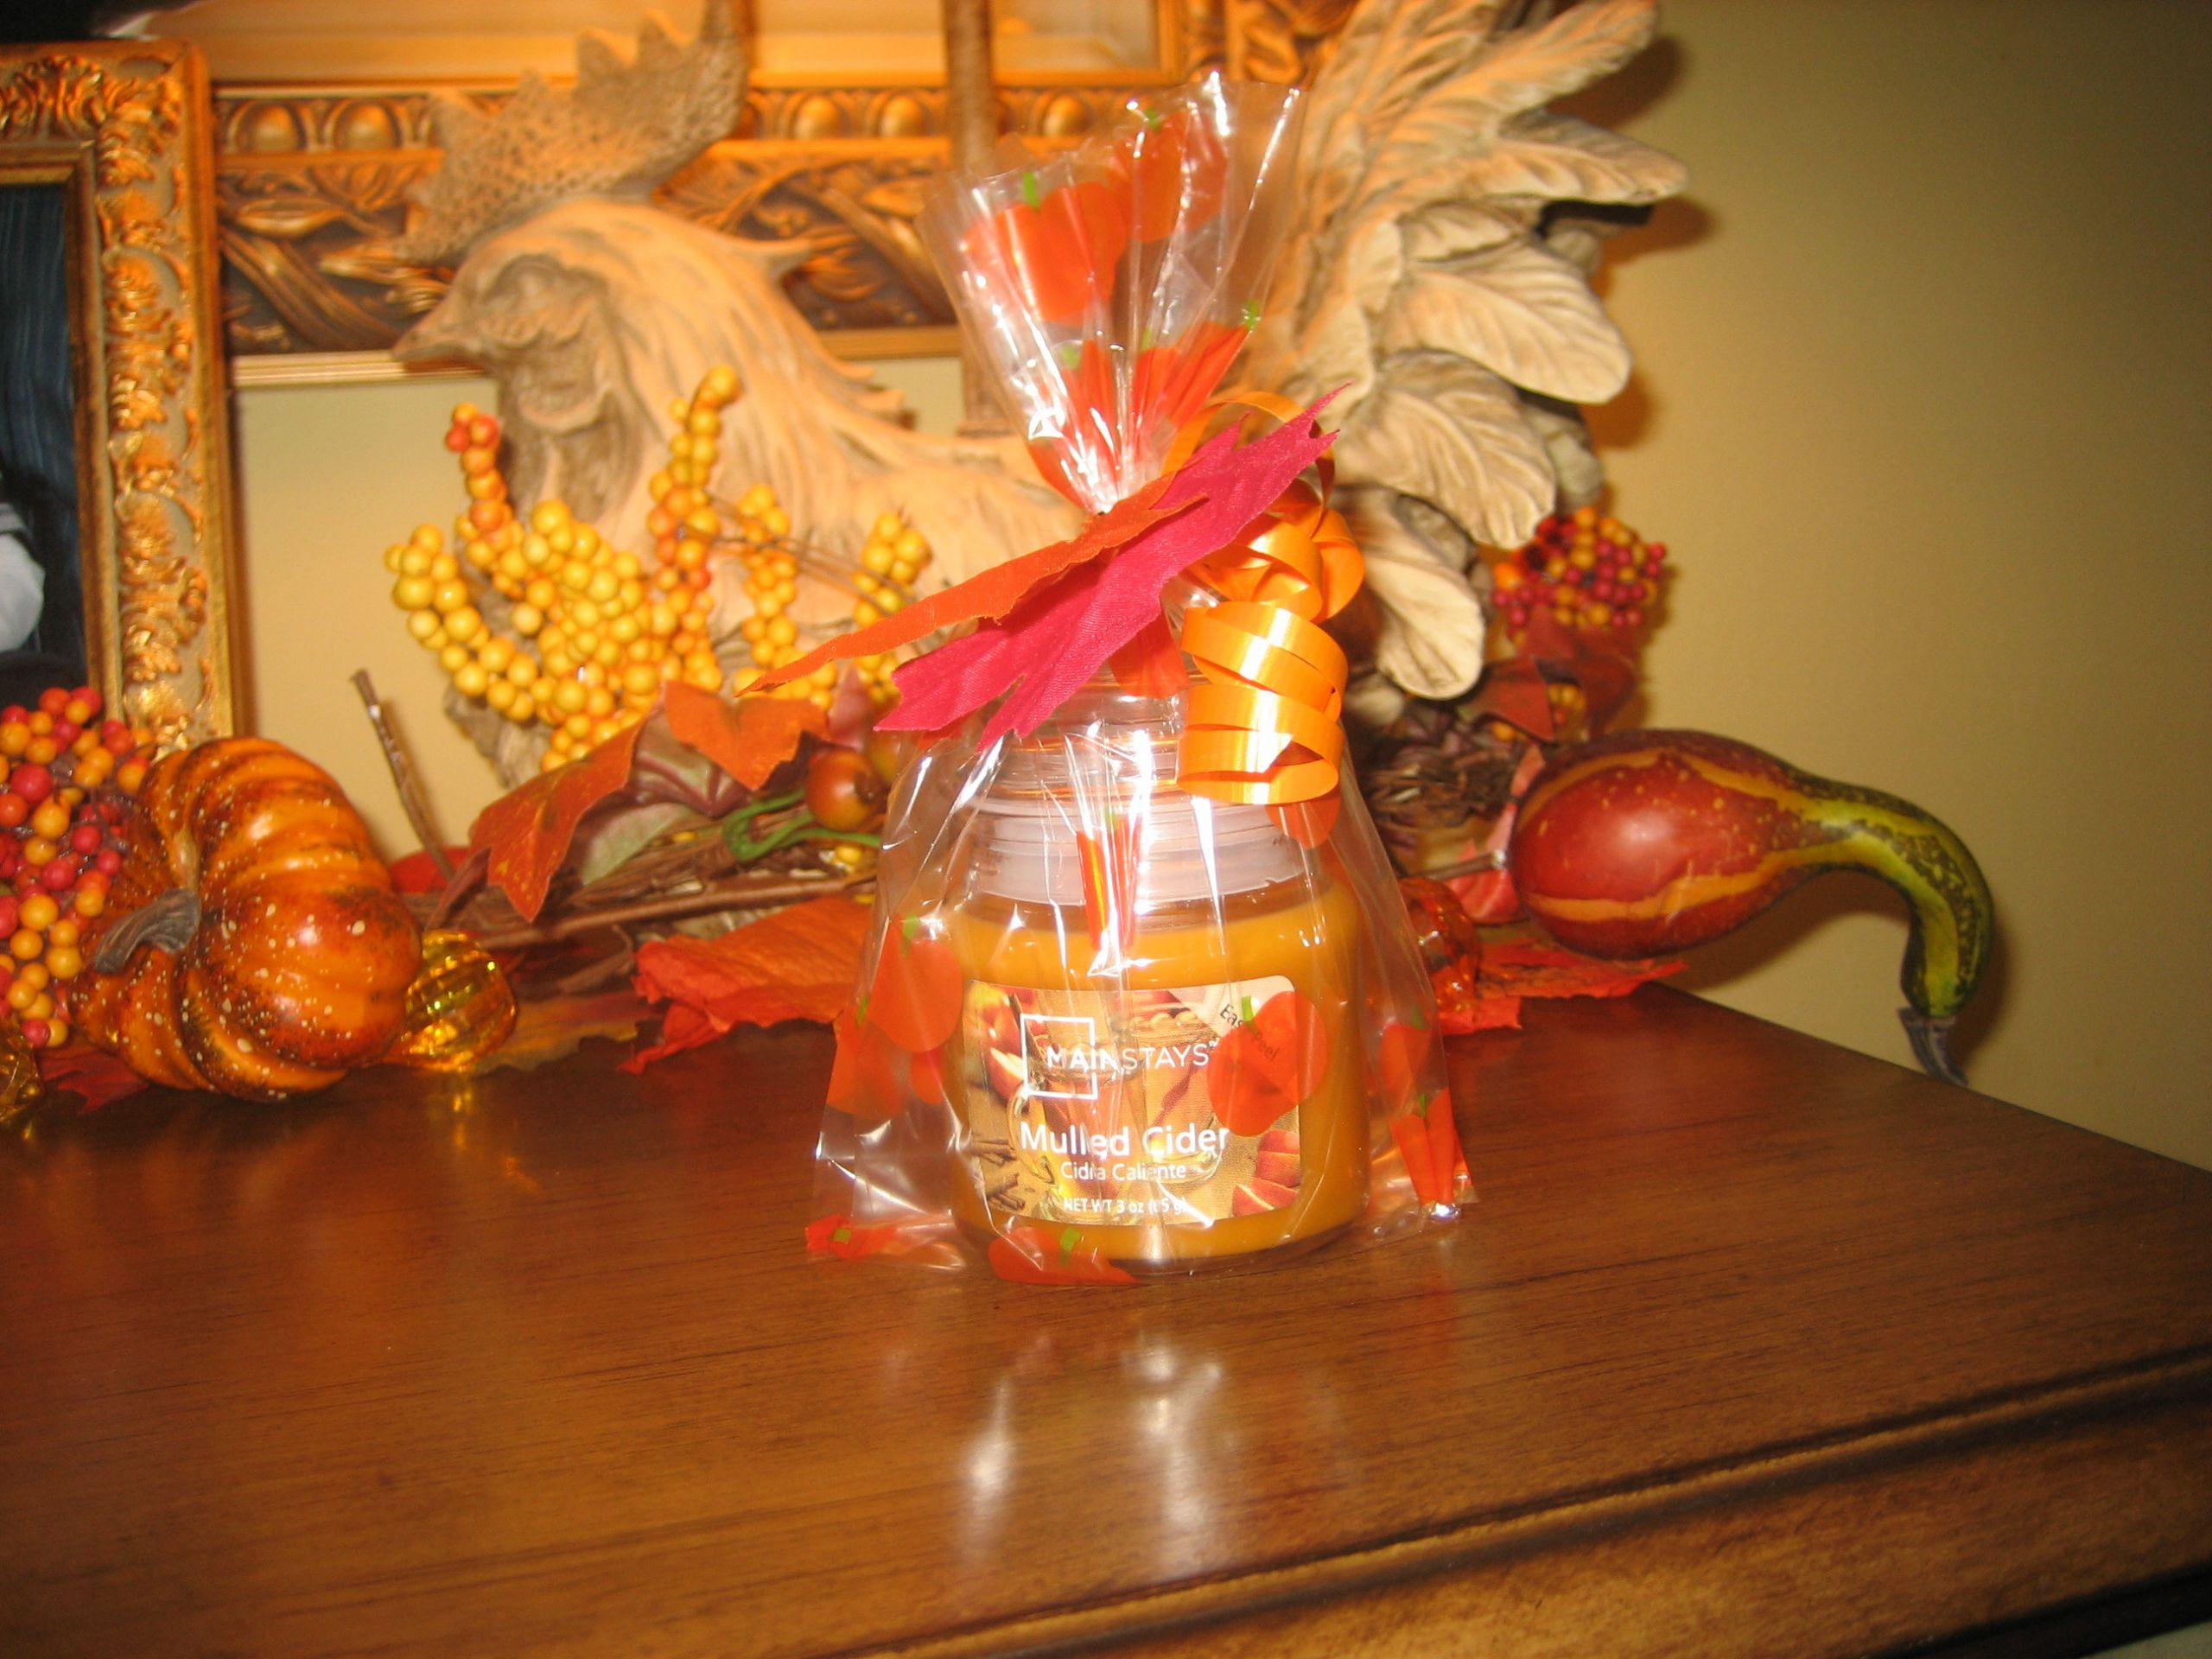 Host Gift Ideas For Couples  The Best Ideas for Host Gift Ideas for Couples Home DIY